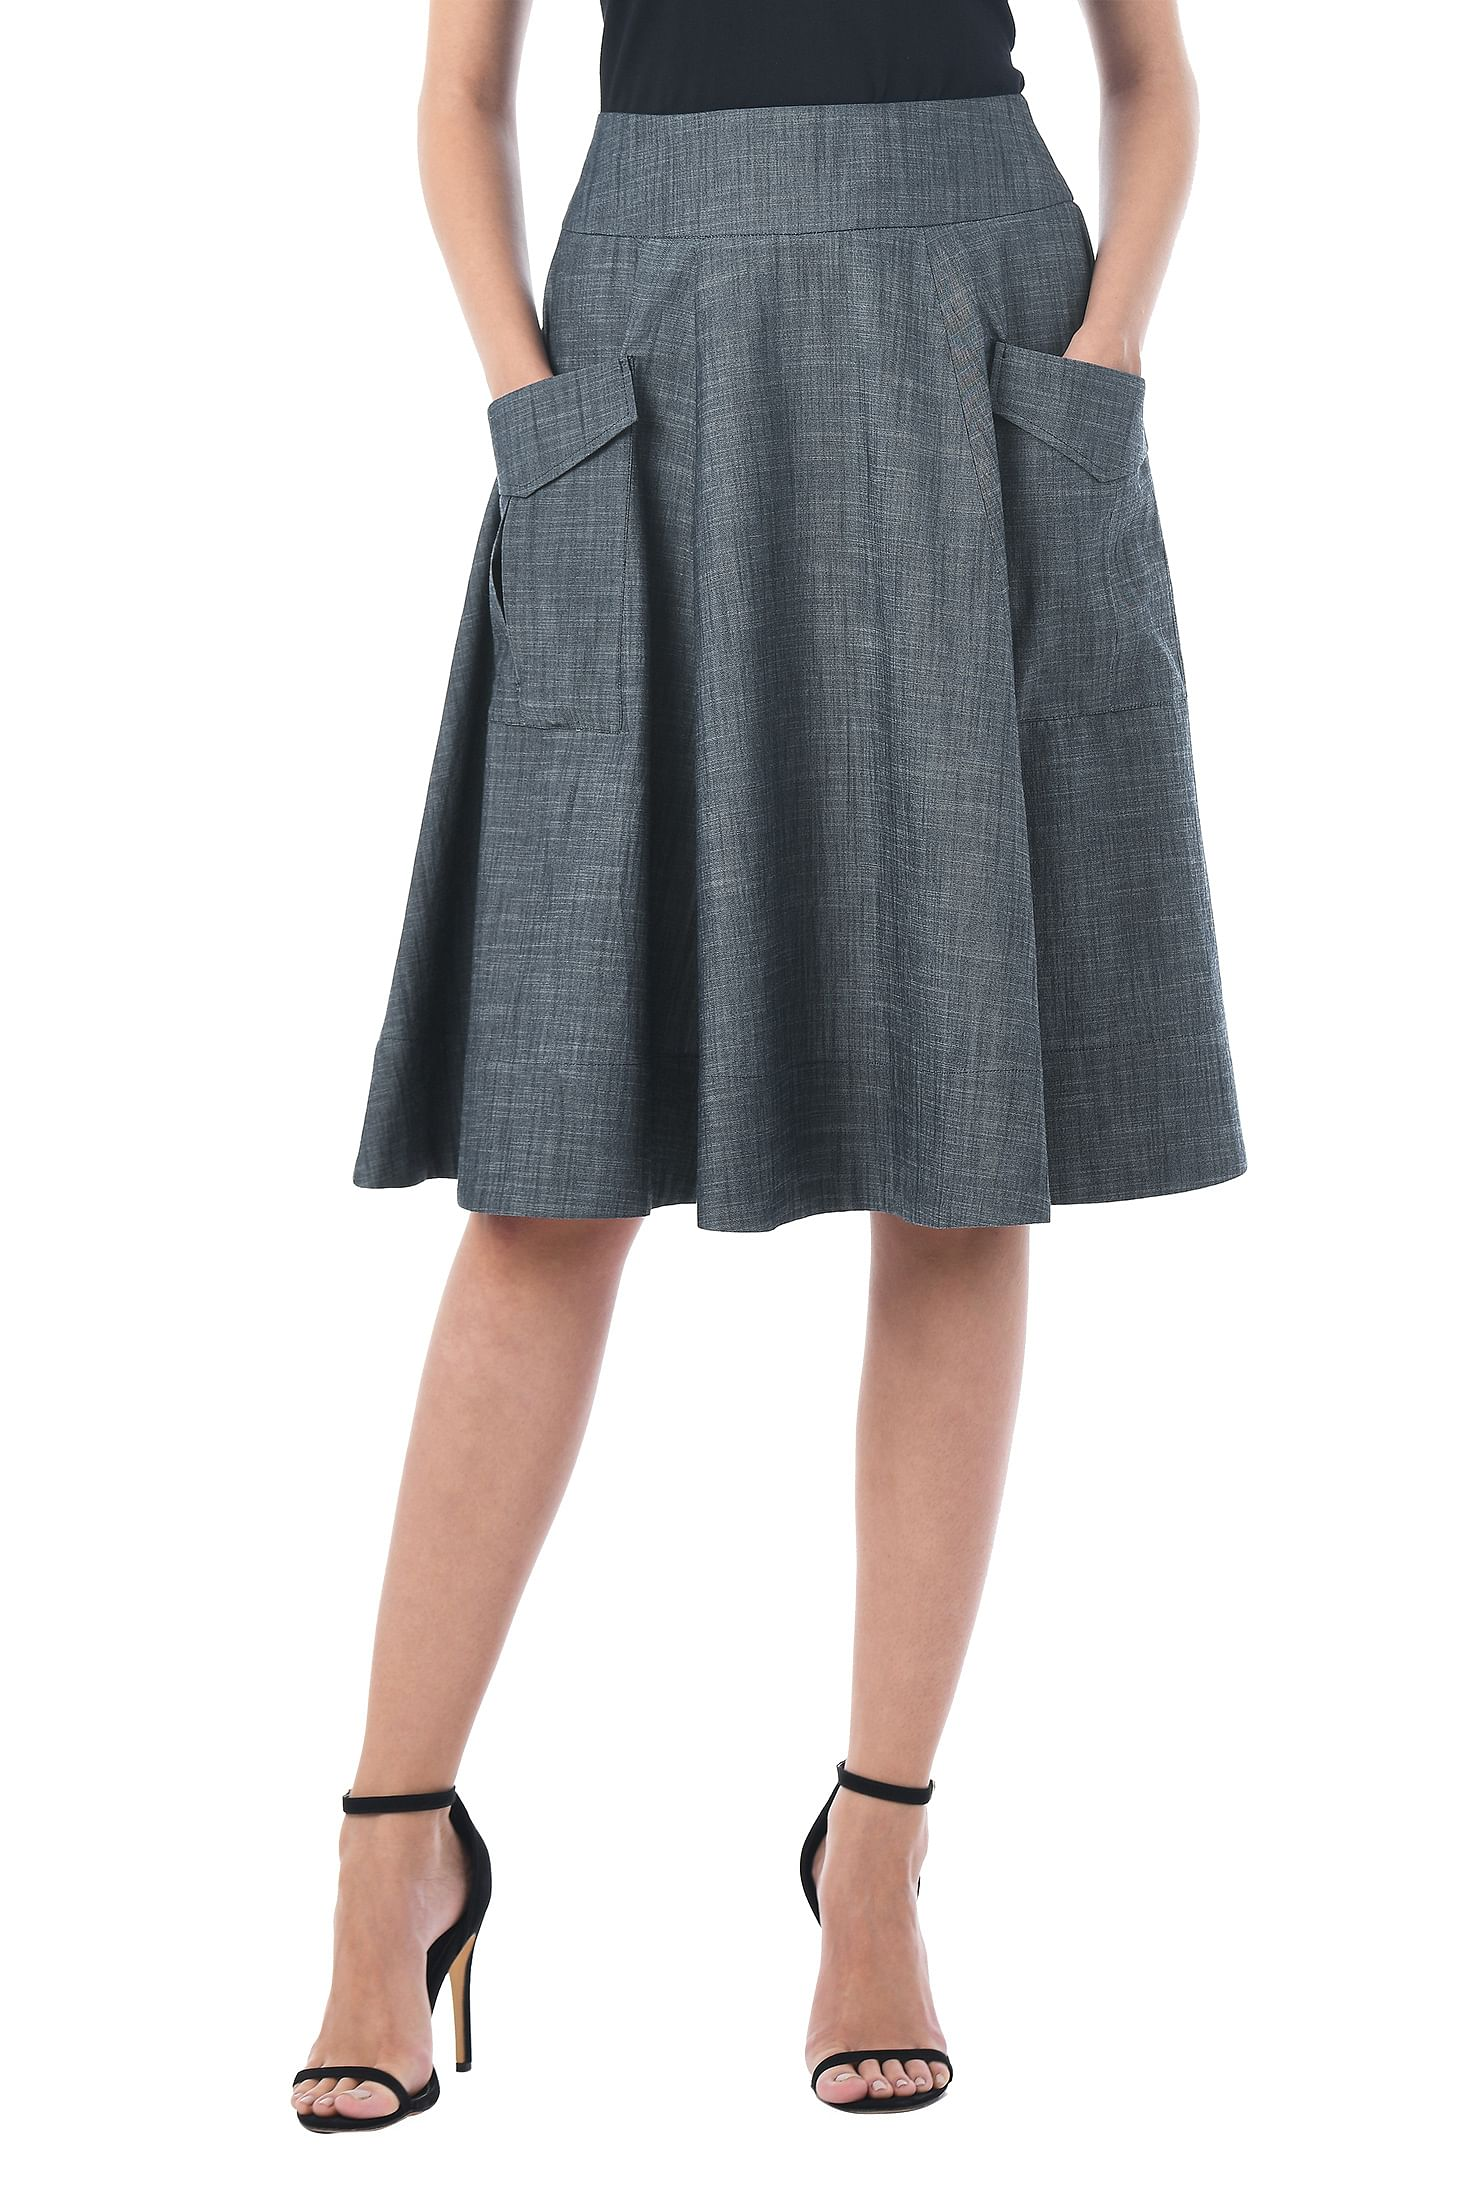 eShakti Women's Cargo pocket cotton chambray skirt